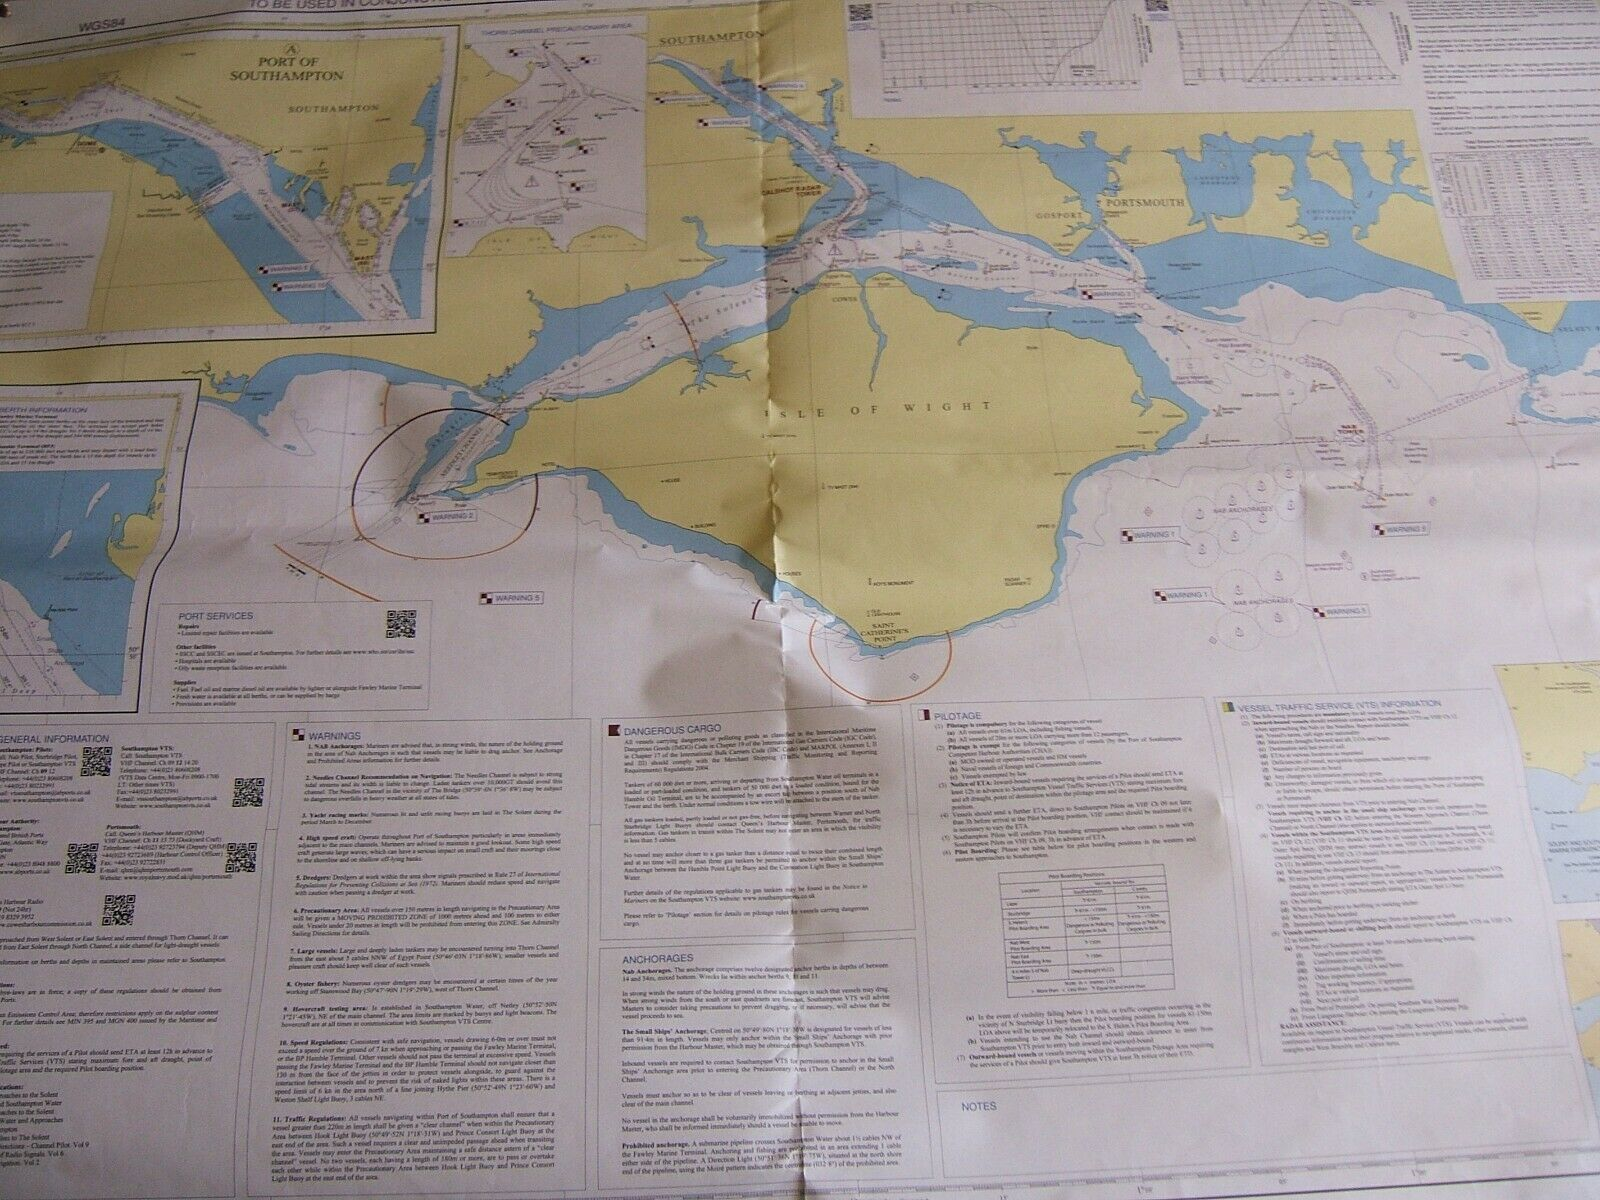 LARGE ADMIRALTY CHART 8002 'THE SOLENT'. PORT APPROACH GUIDE TO SOUTHAMPTON